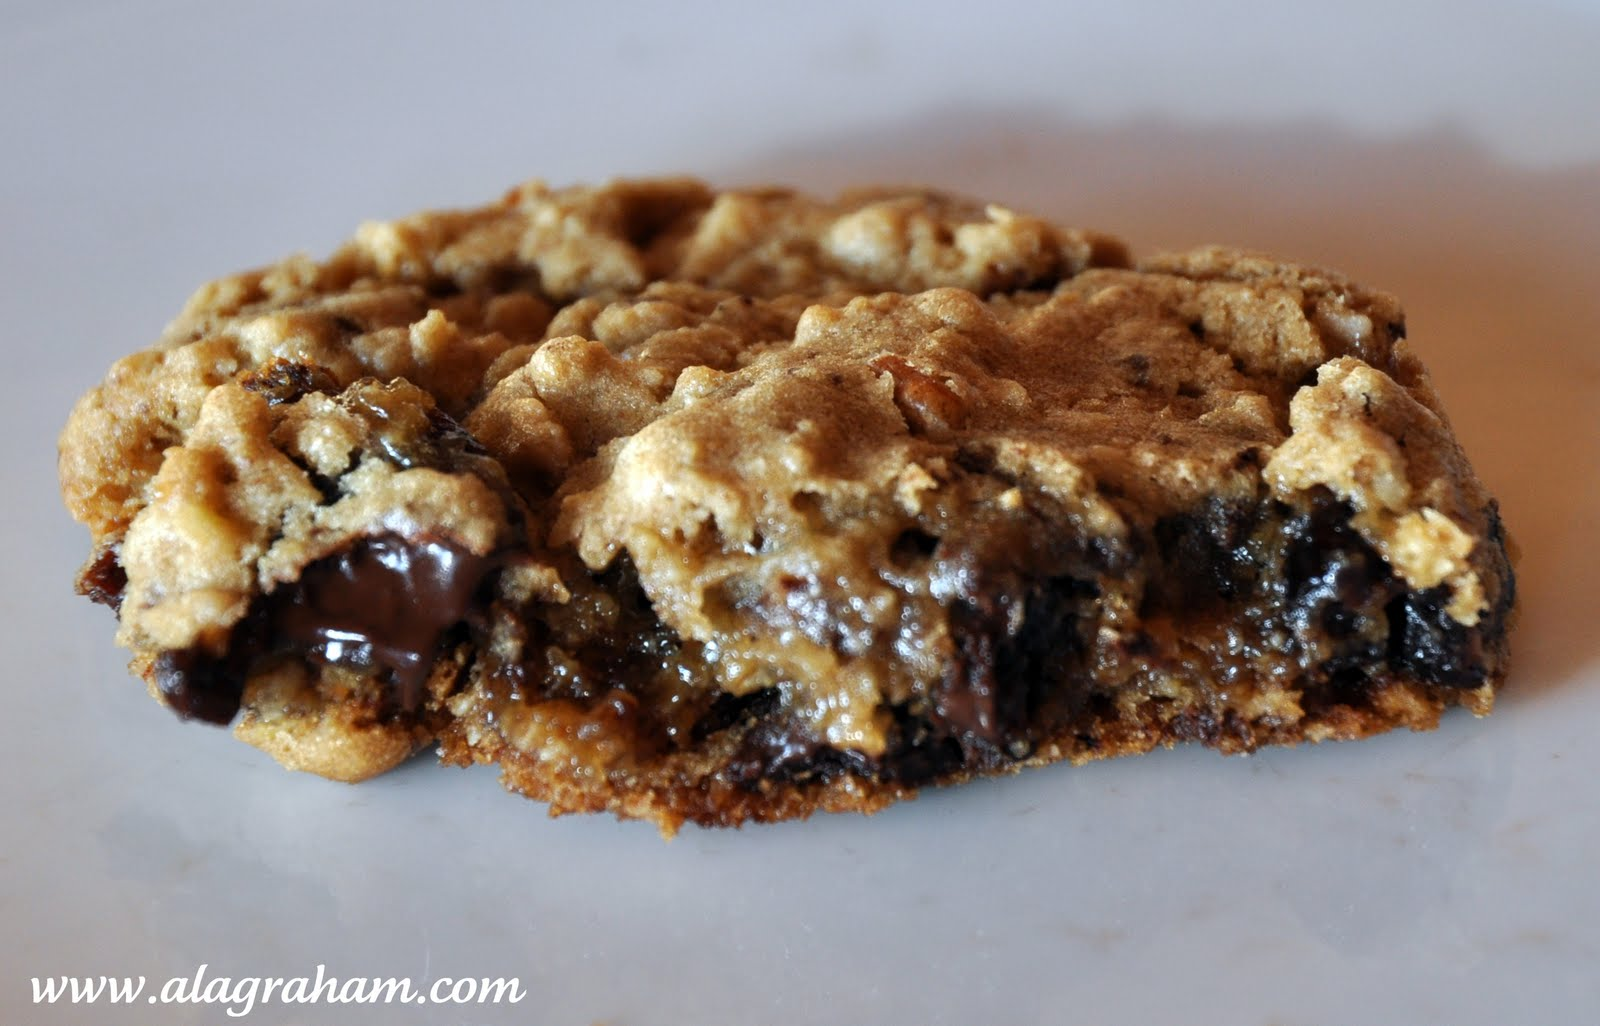 ... GRAHAM: CHOCOLATE CHUNK OATMEAL COOKIES WITH PECANS AND DRIED CHERRIES